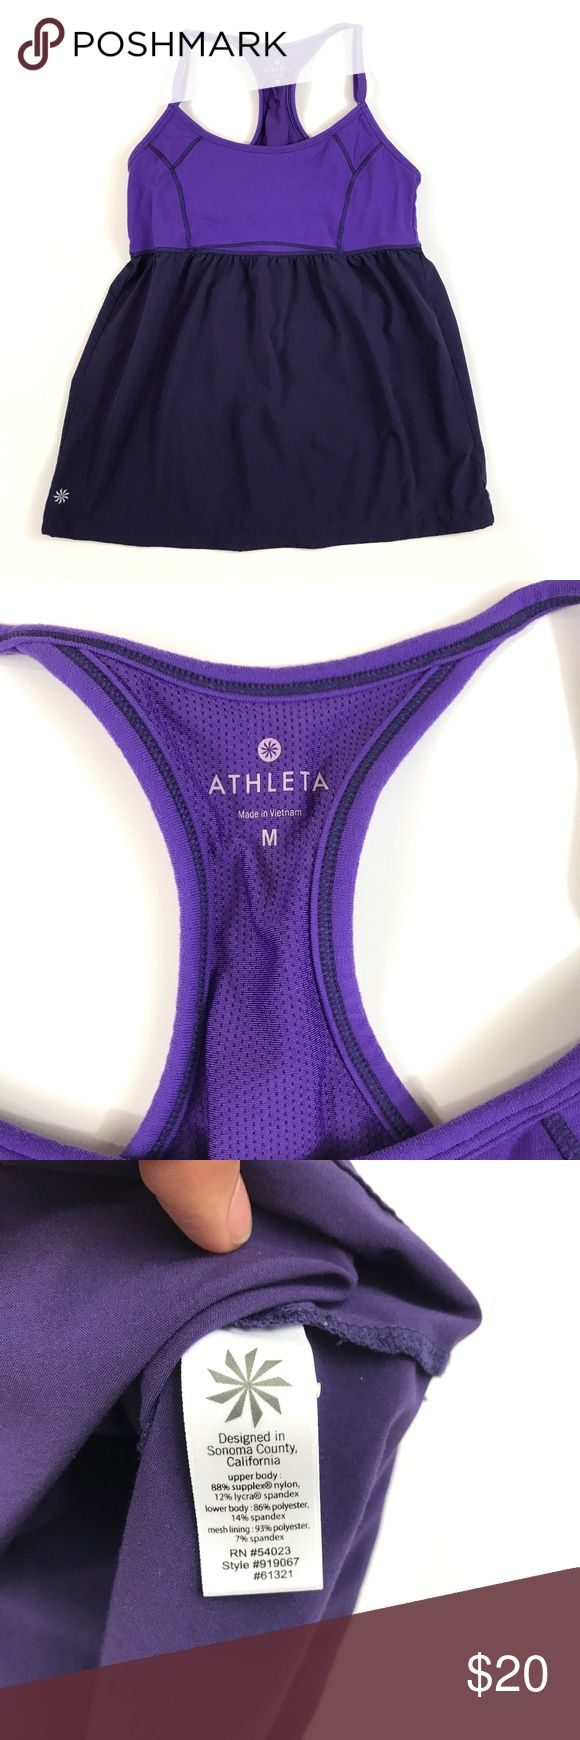 Athleta Women's Retreat Tank Violet Adjustable M Athleta Retreat Tank in violet/purple Medium Armpit to armpit: approximately 14 inches Shoulder to hem: approximately 24 inches (with adjustable strap) Pre-owned. Has some light pilling but overall in good condition. Please see photos! Feel free to ask any questions! Athleta Tops Tank Tops